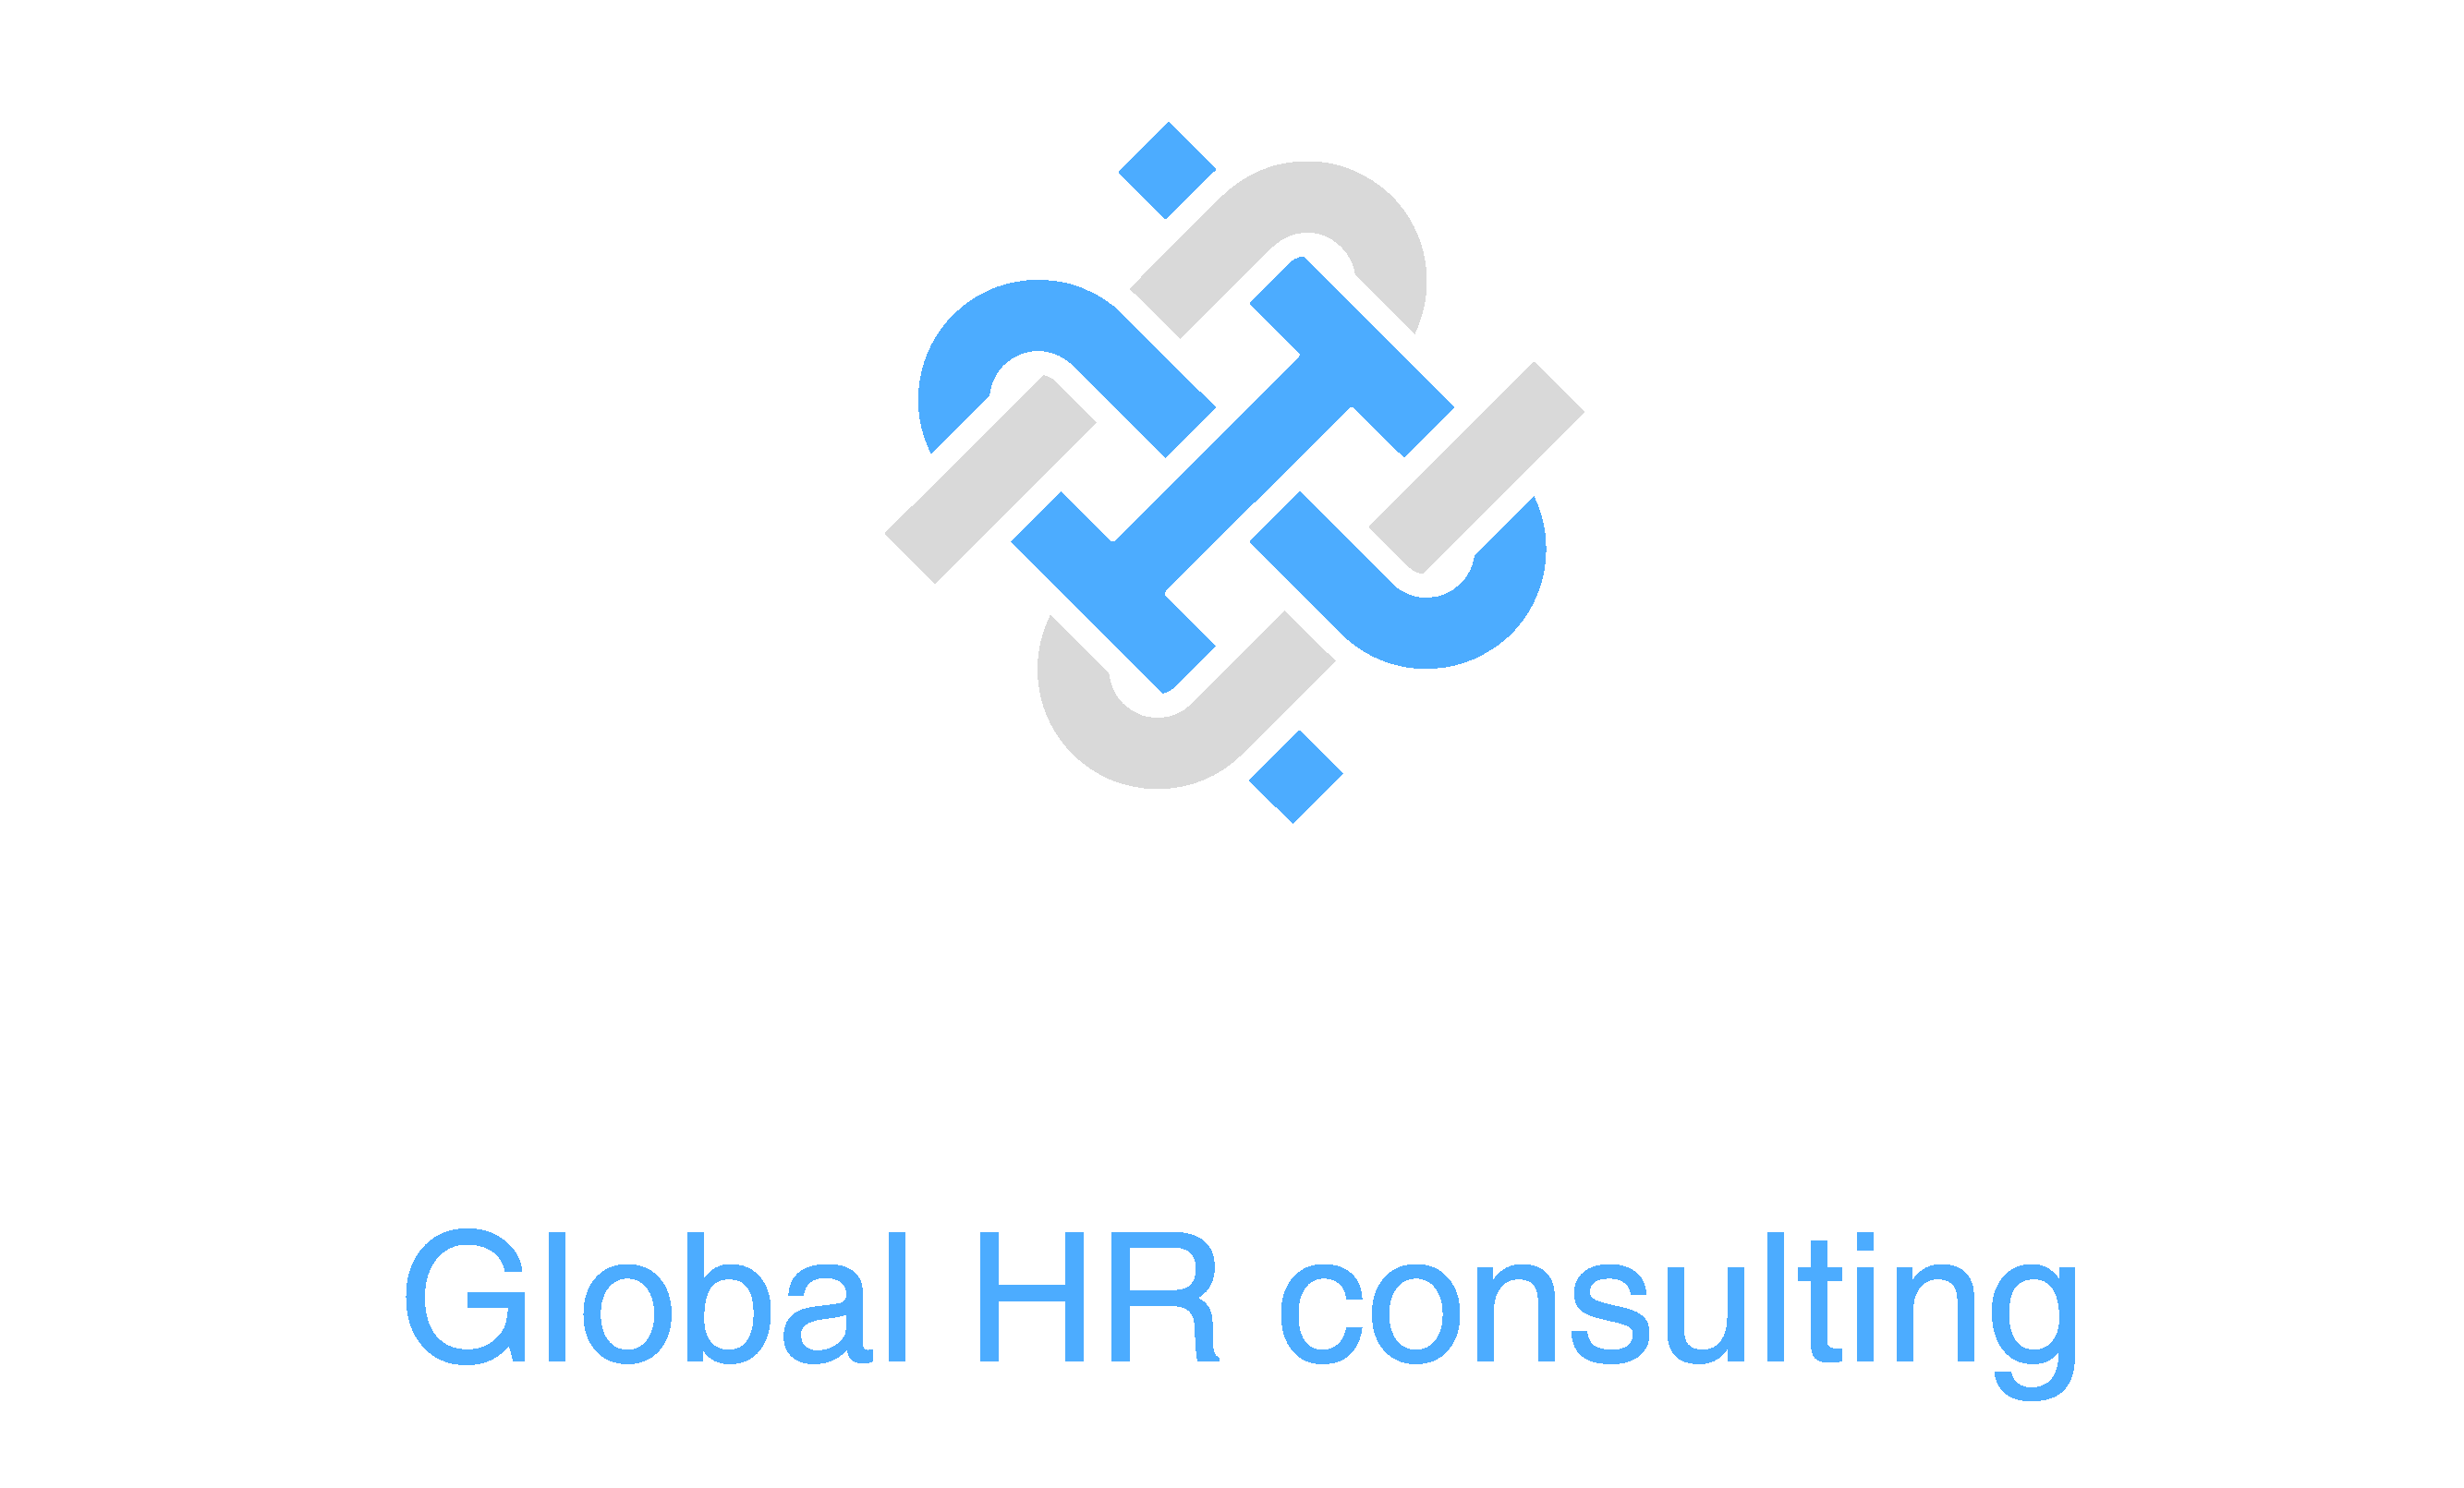 LD Consult